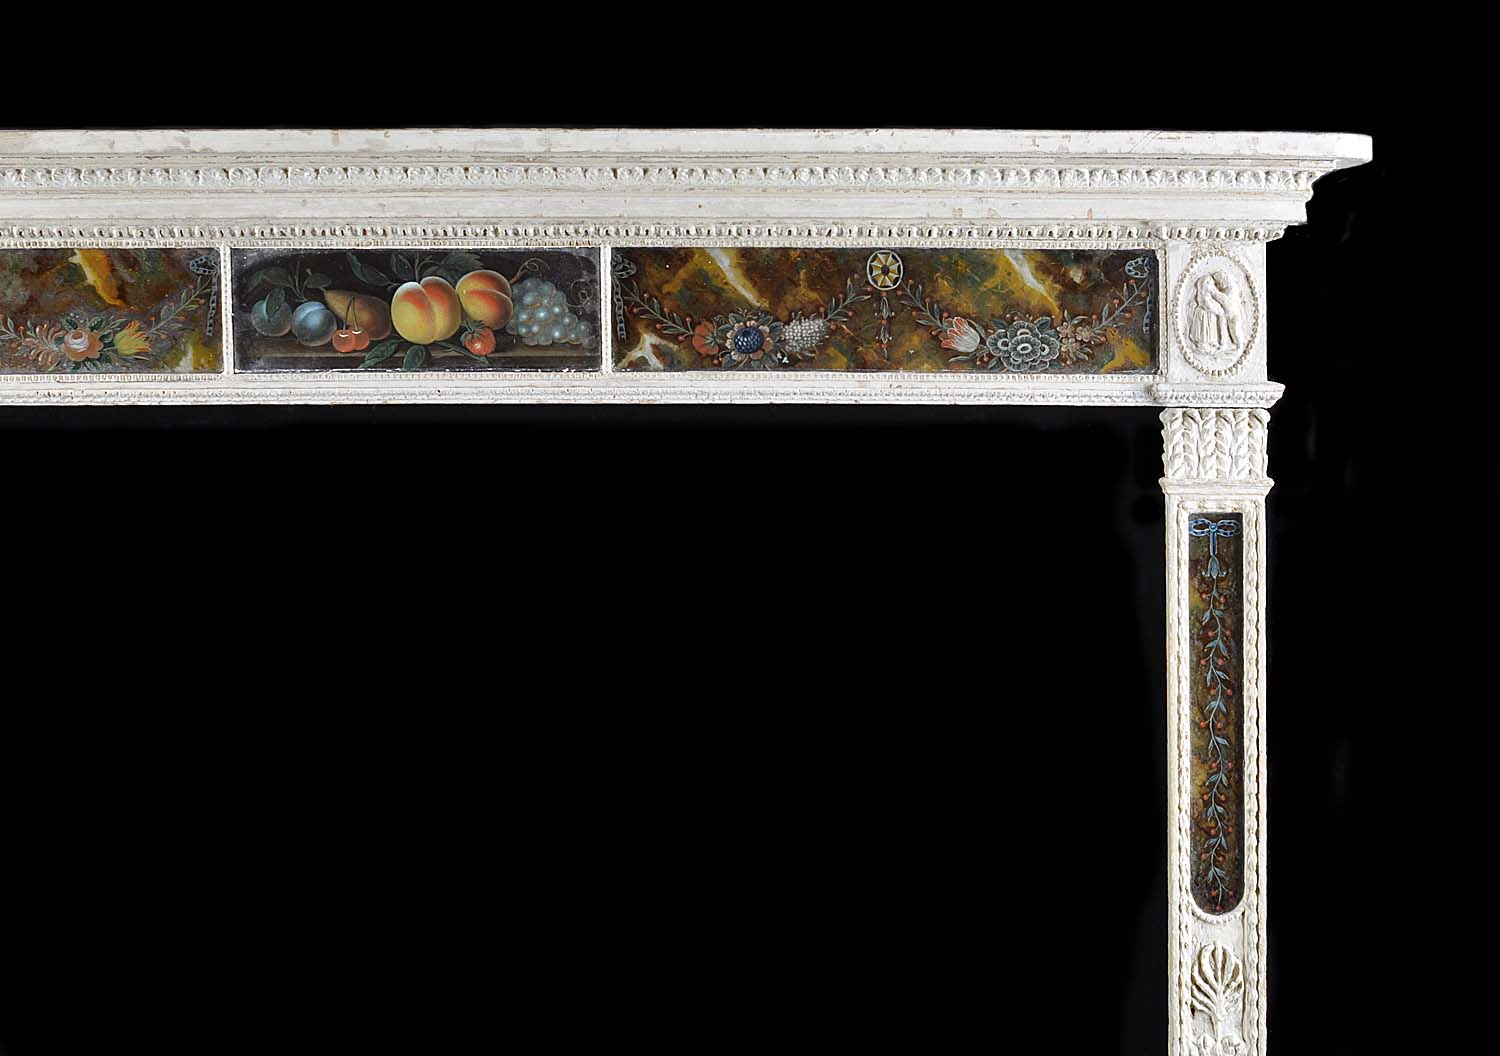 A fine antique Georgian pine and verre eglomisé fireplace surround